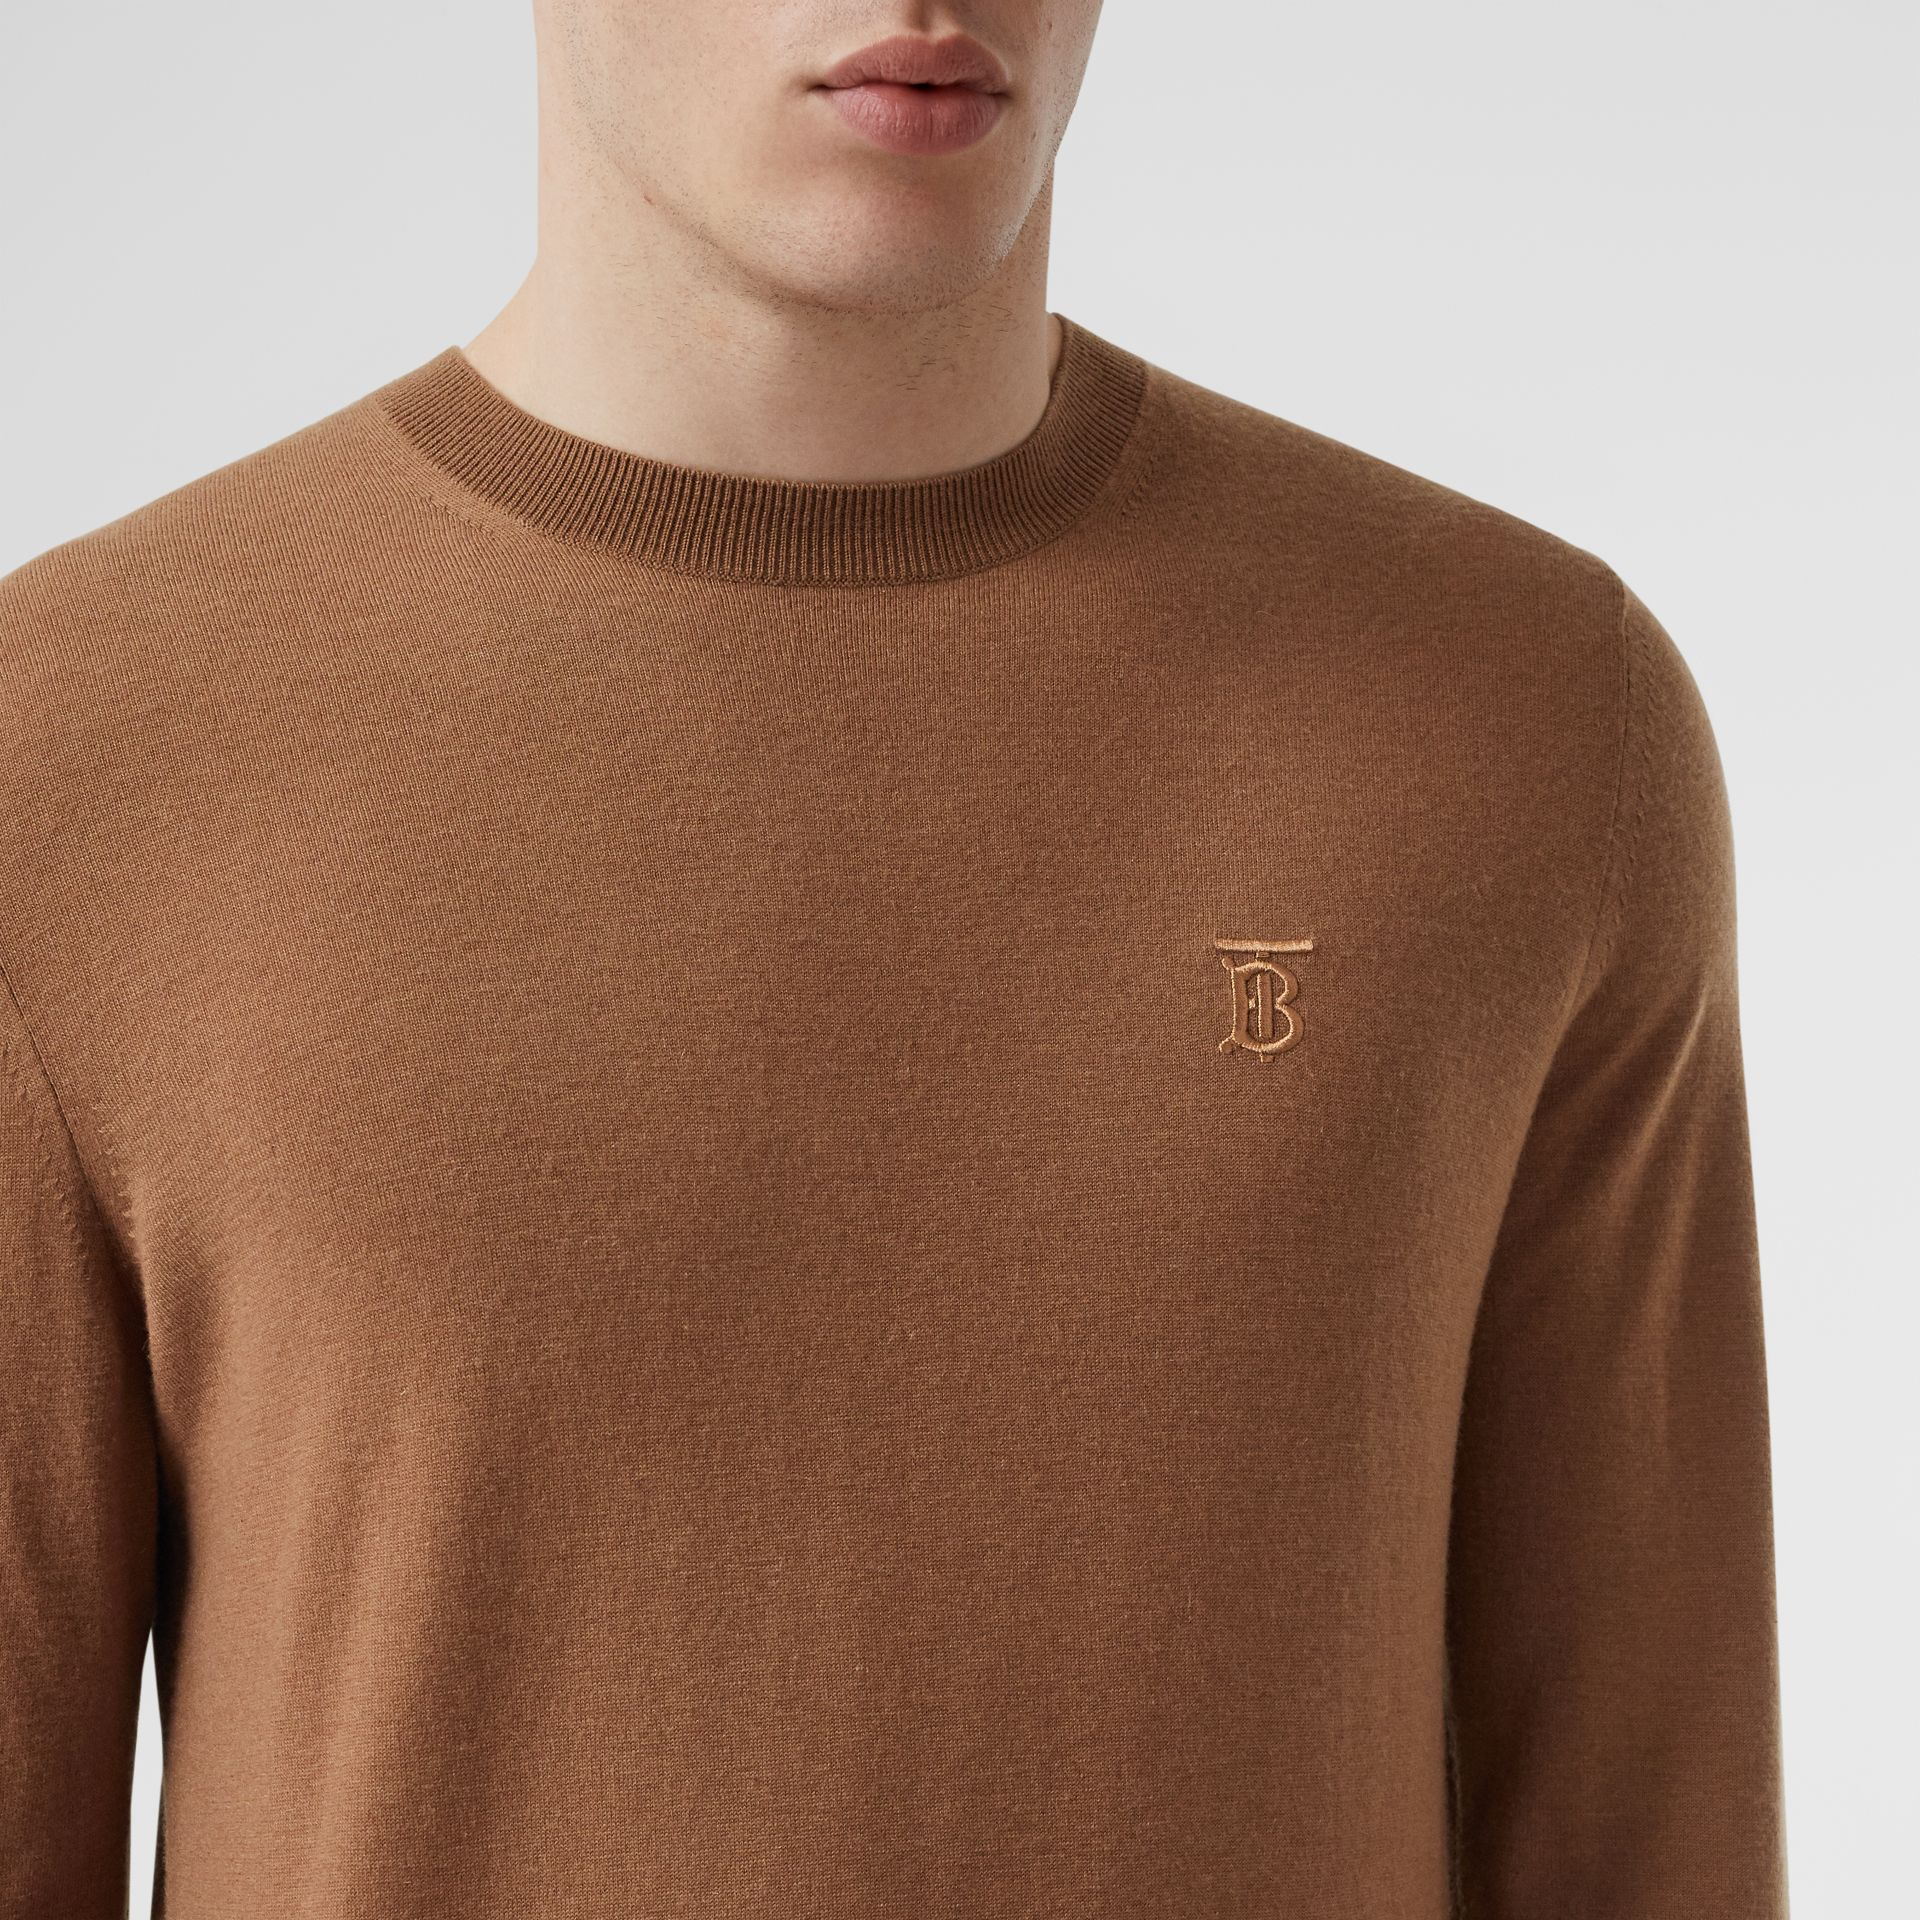 Monogram Motif Cashmere Sweater in Maple - Men | Burberry - gallery image 1